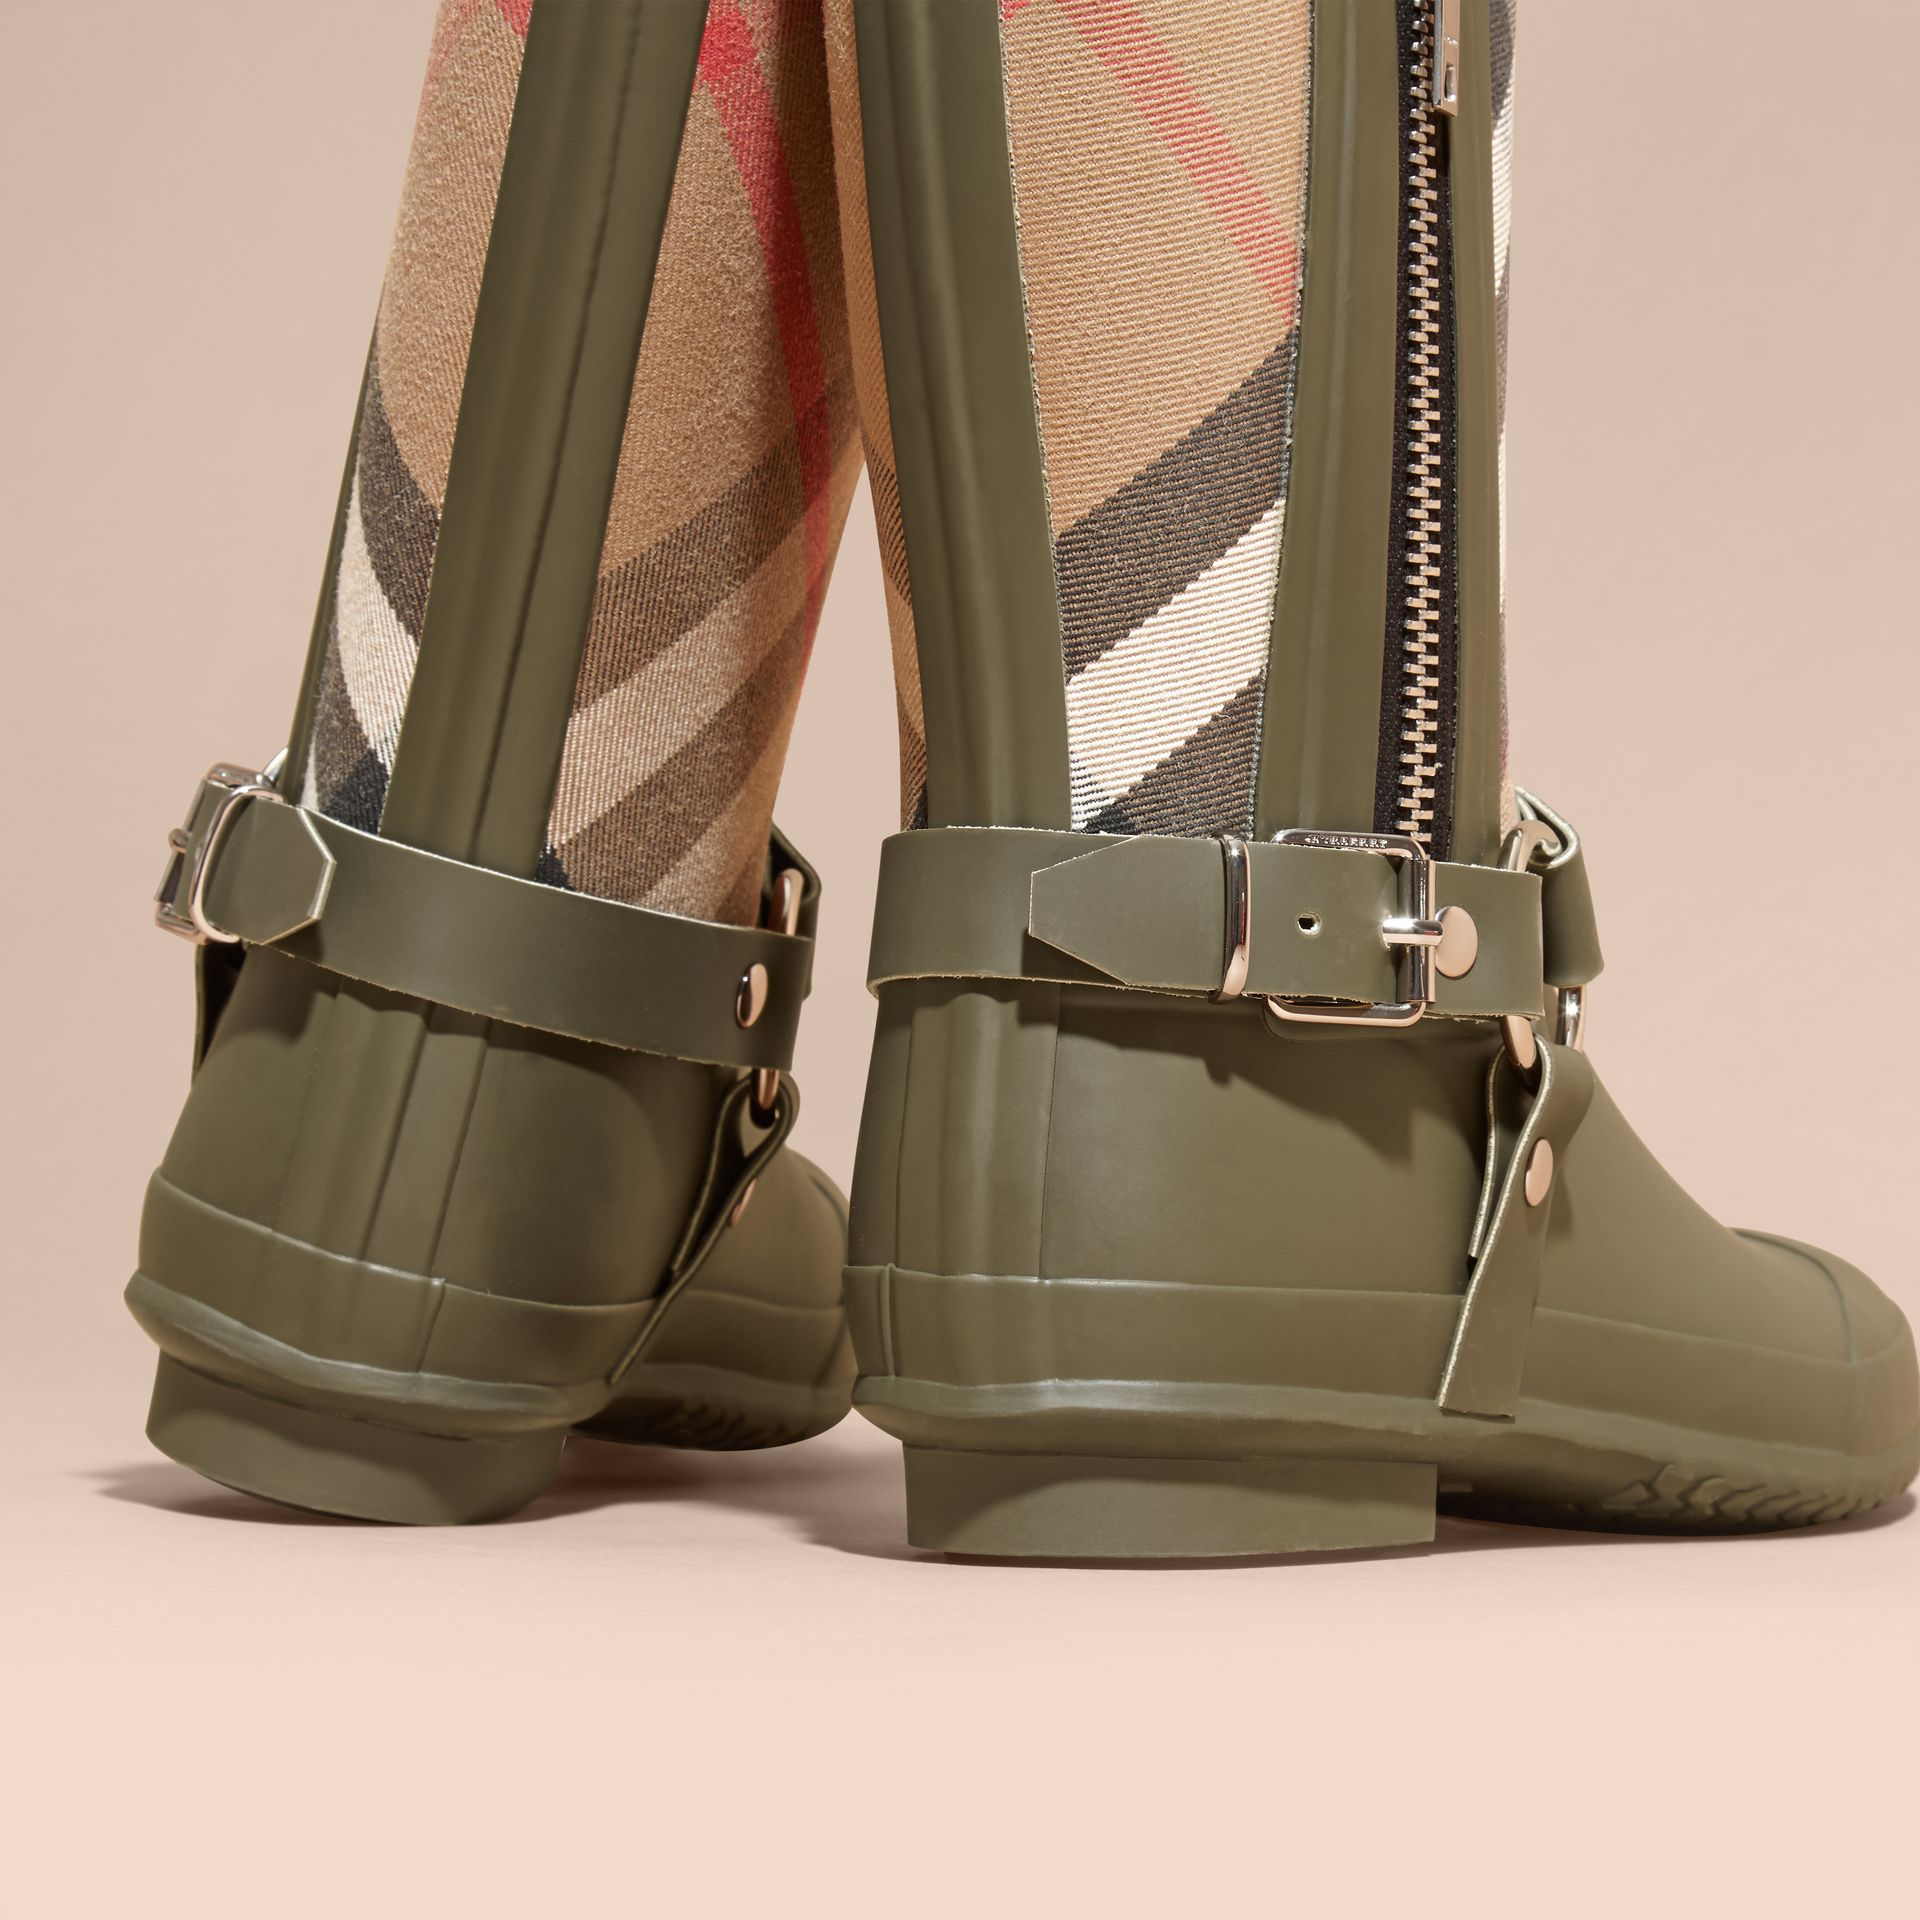 House check/military green Buckle and Strap Detail Check Rain Boots House Check/military Green - gallery image 4